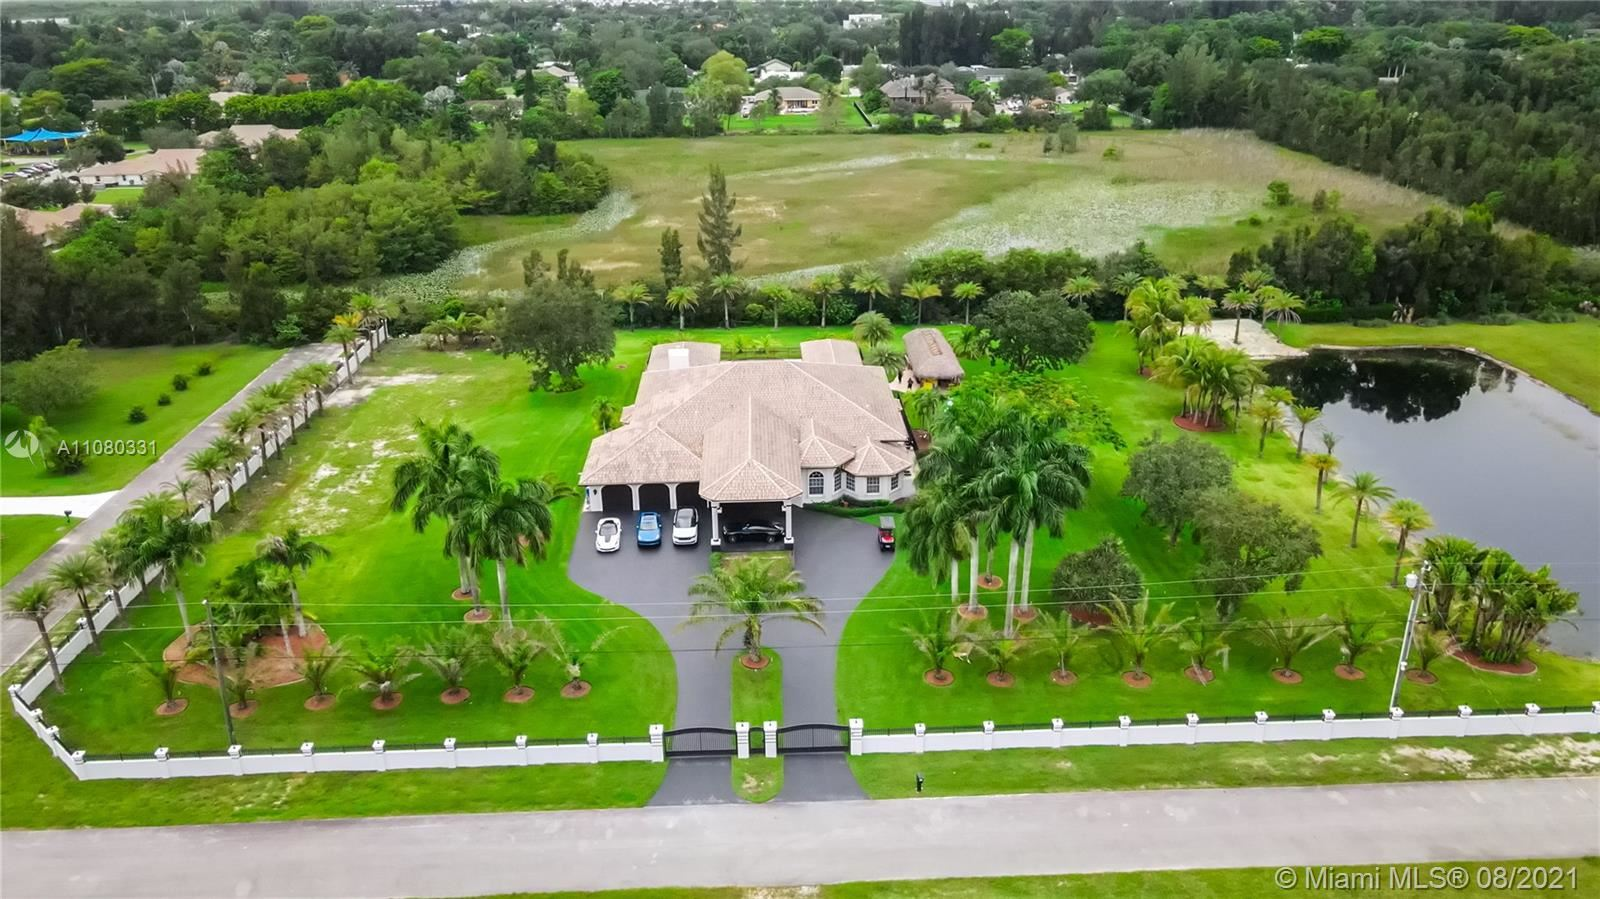 5655 SW 192nd Ter, SouthWest Ranches, FL 33332 - #: A11080331